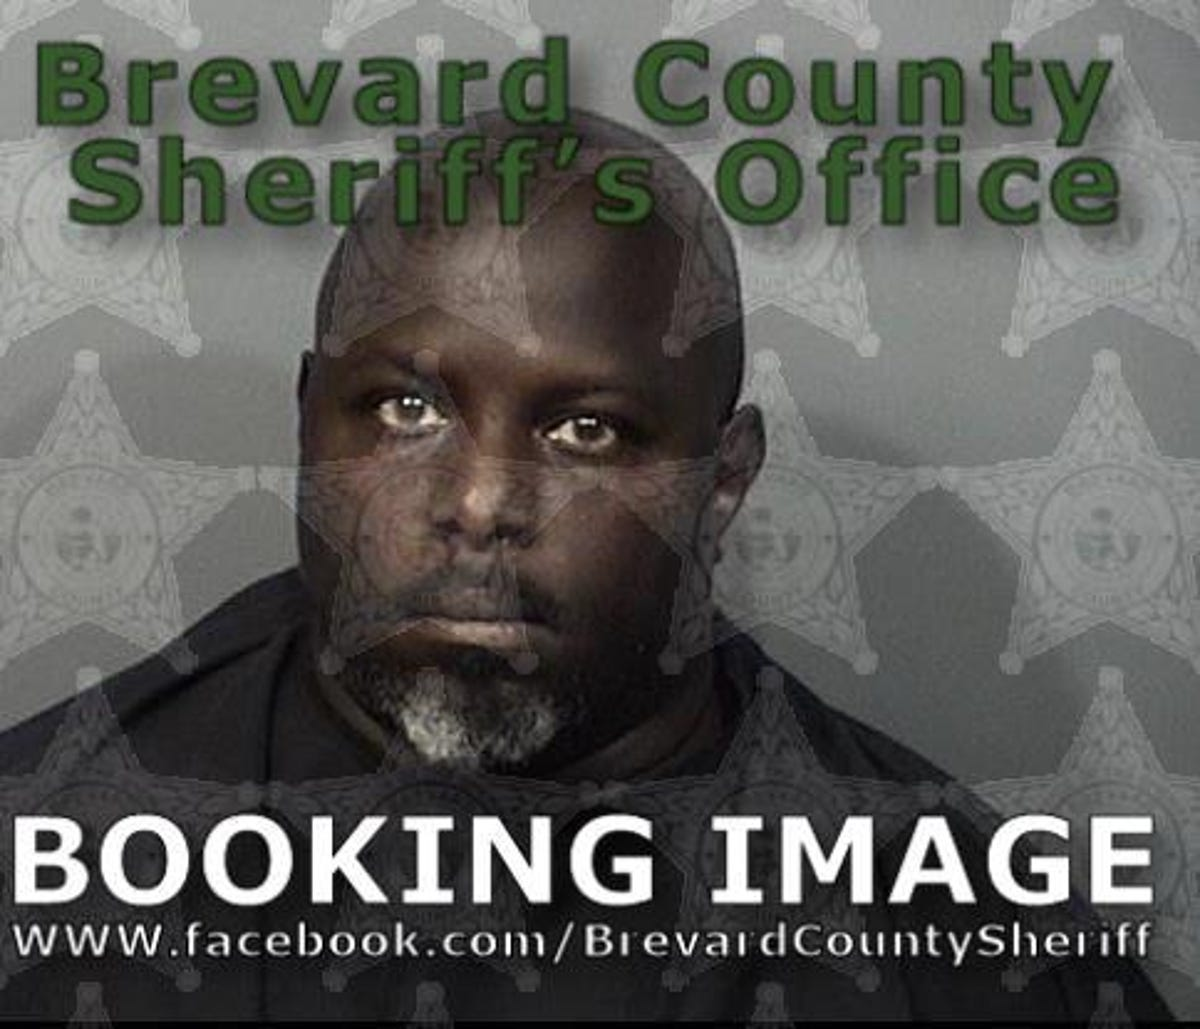 Sex offender accused of lewd act outside Cocoa store